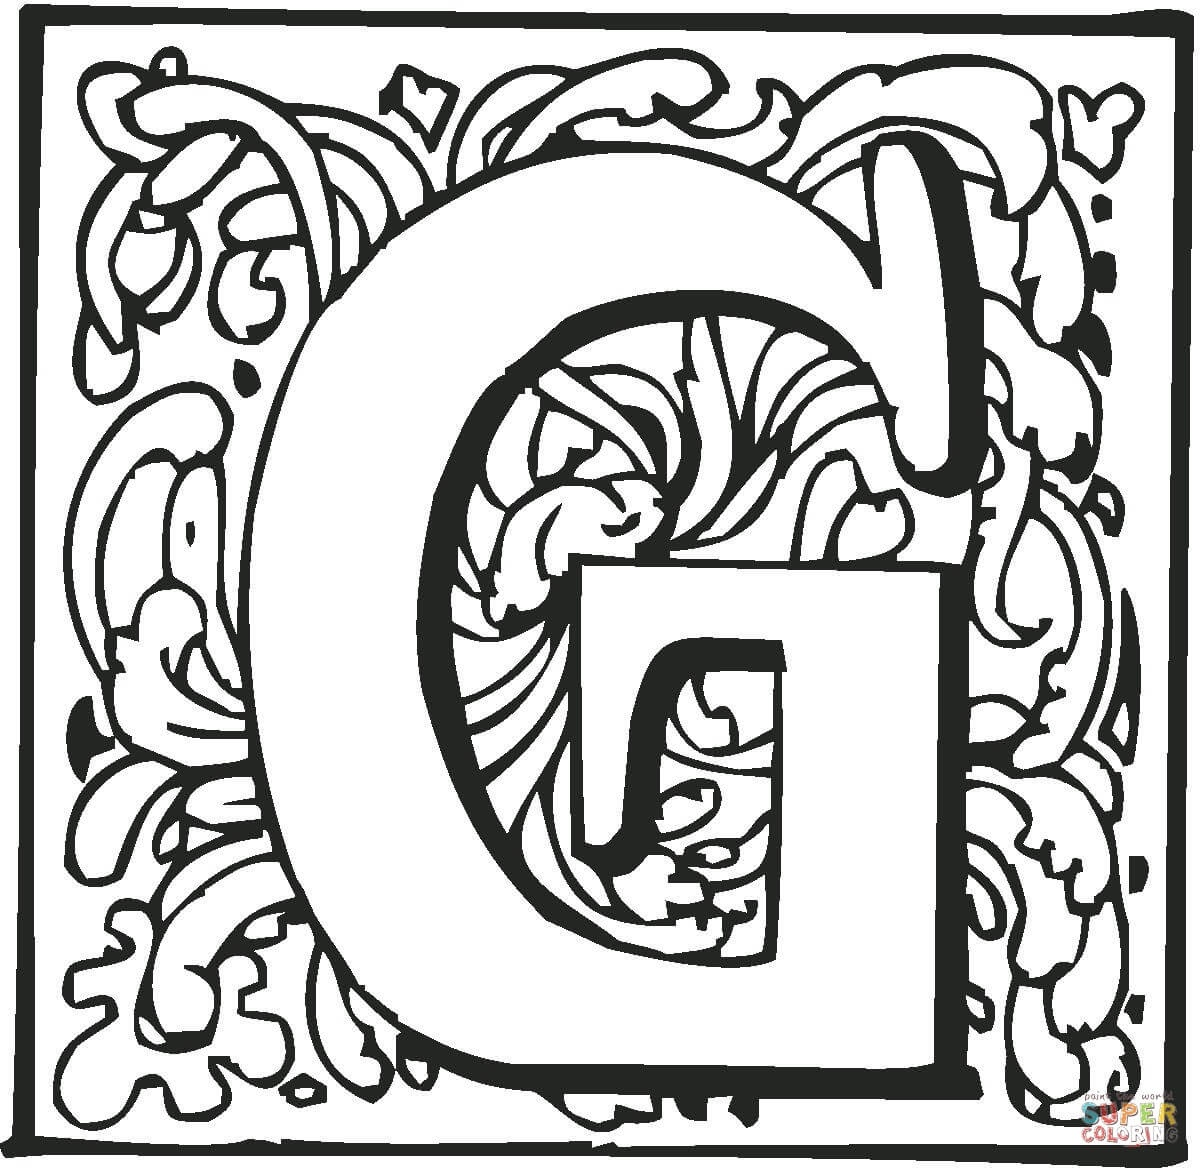 Letter G Coloring Pages | Free Coloring Pages - Free Printable Letter G Coloring Pages